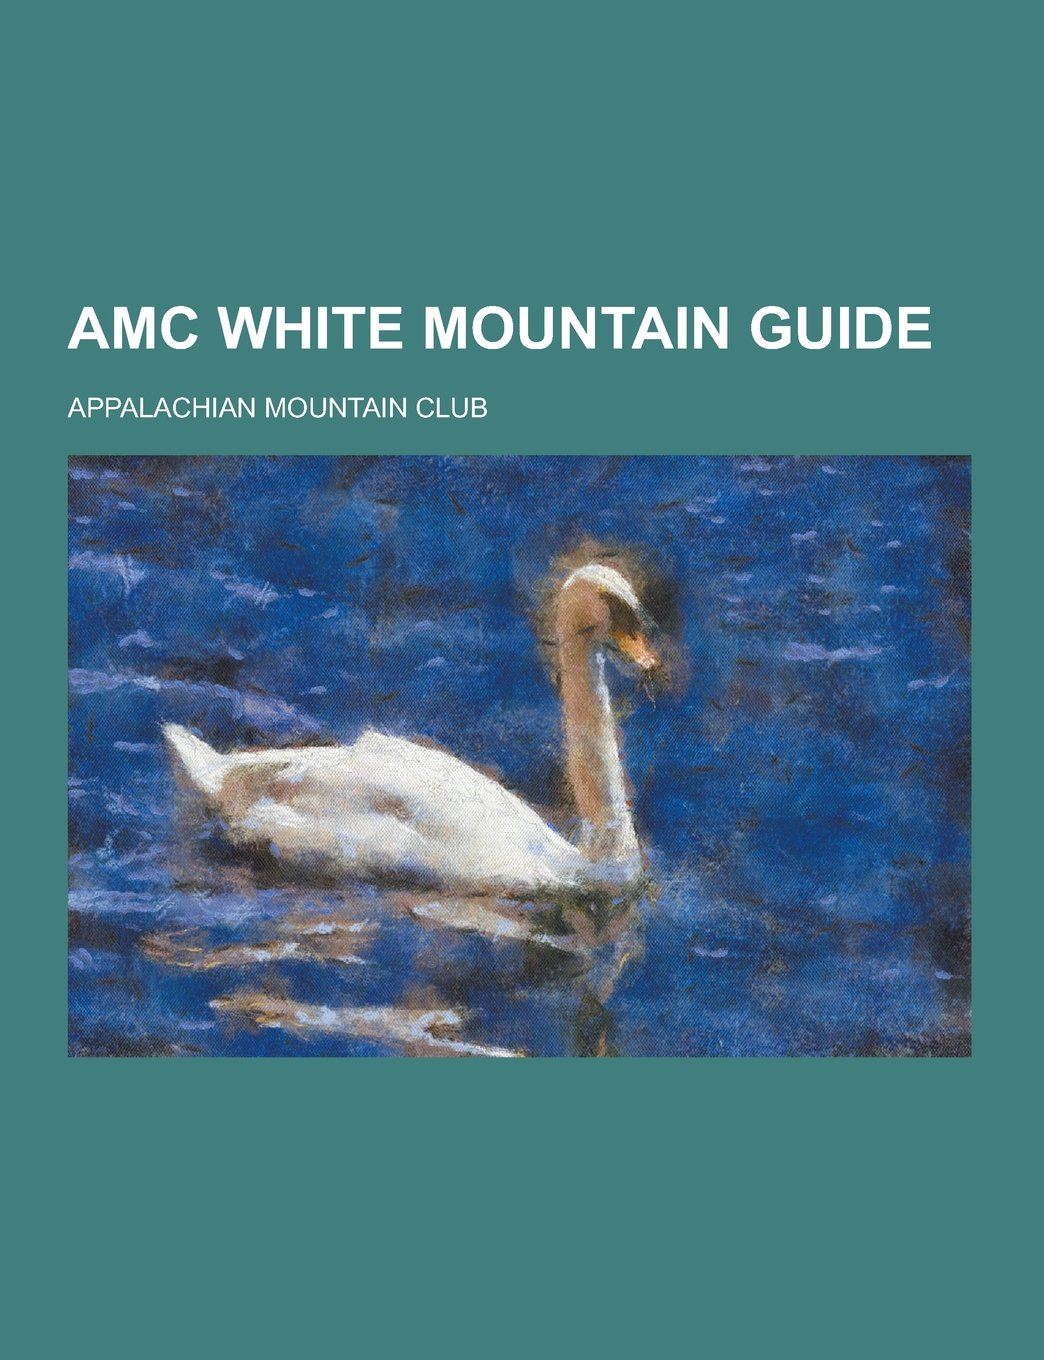 Image OfAMC White Mountain Guide